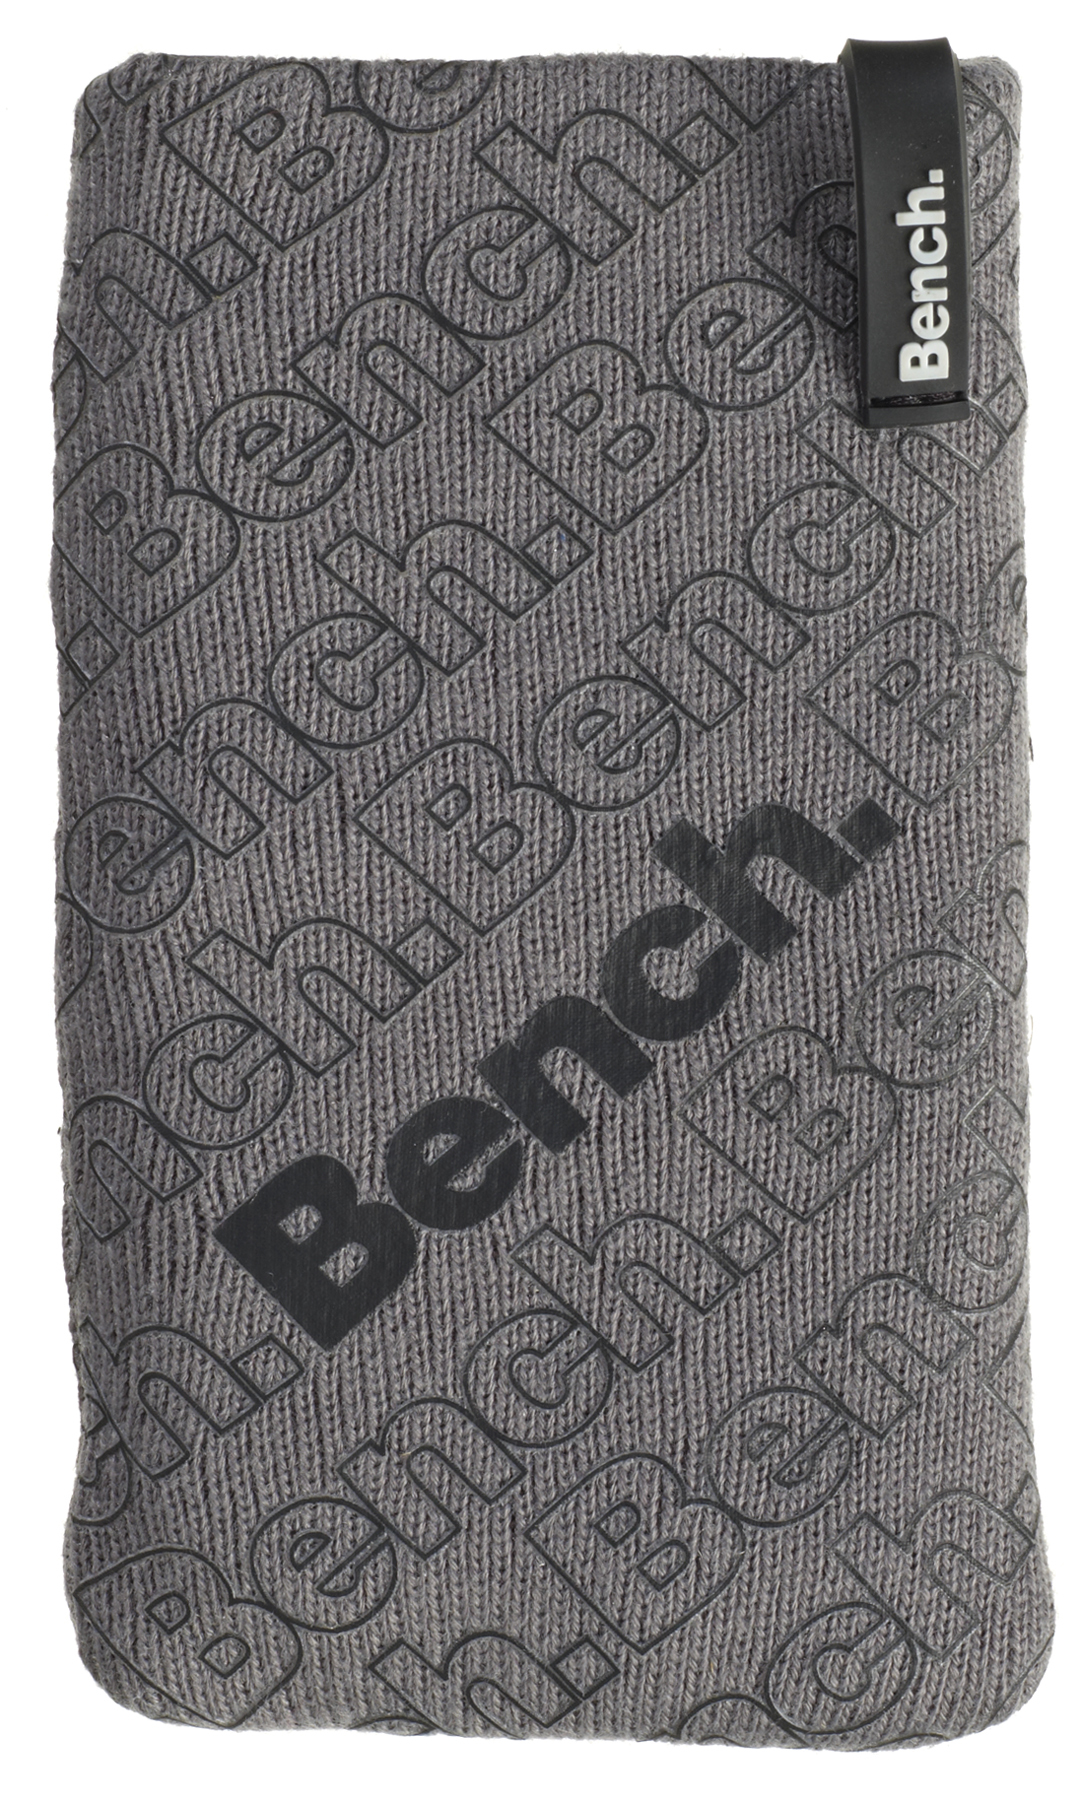 Bench Clean sock grey (Grau)